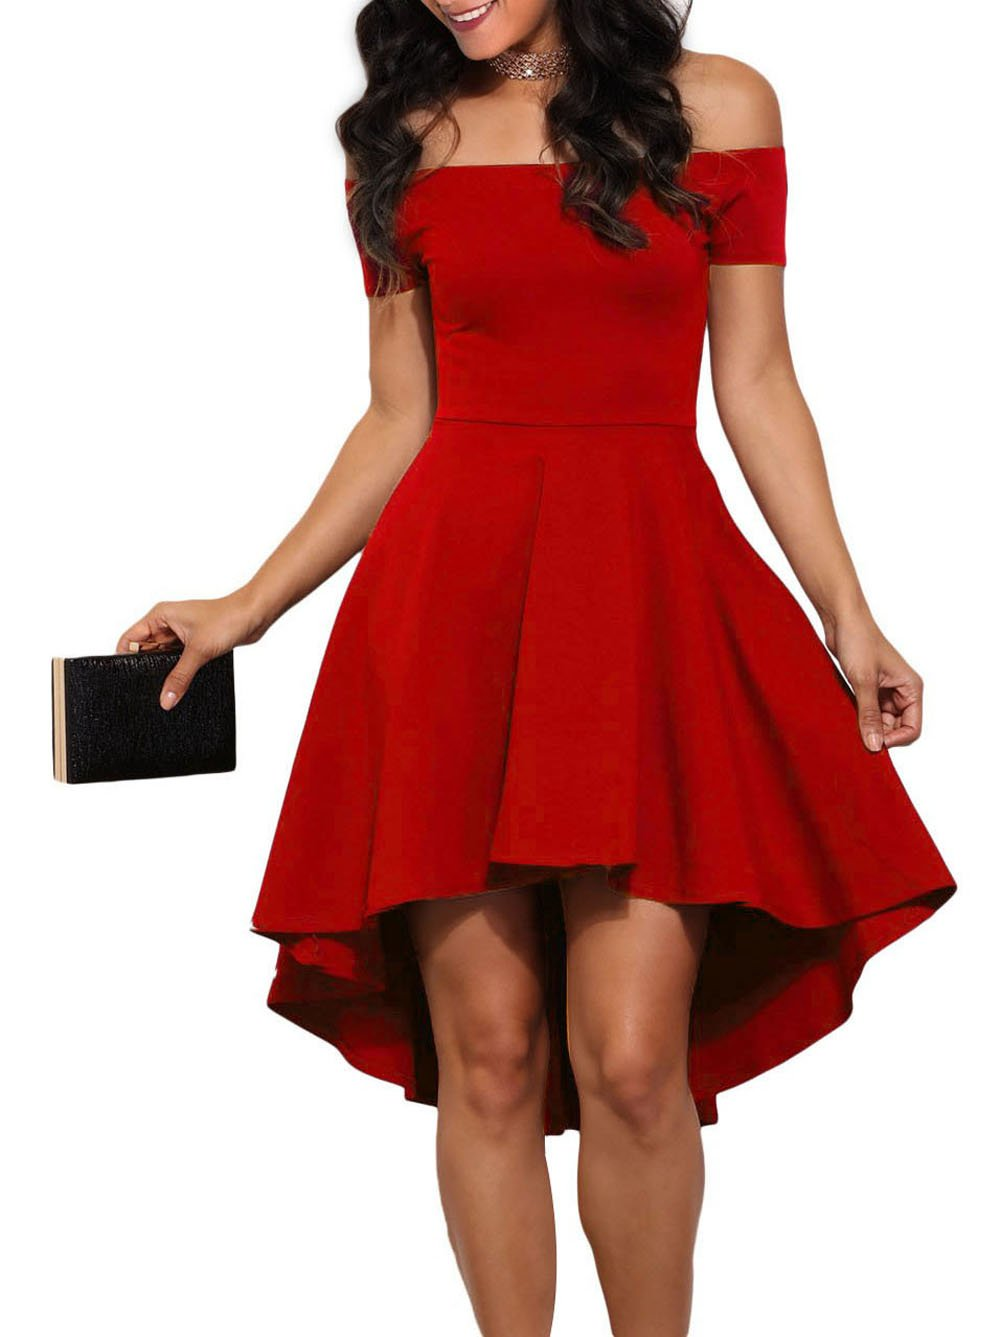 LOSRLY Womens Off The Shoulder Skater High Low Homecoming Party Cocktail Dress YL61346C